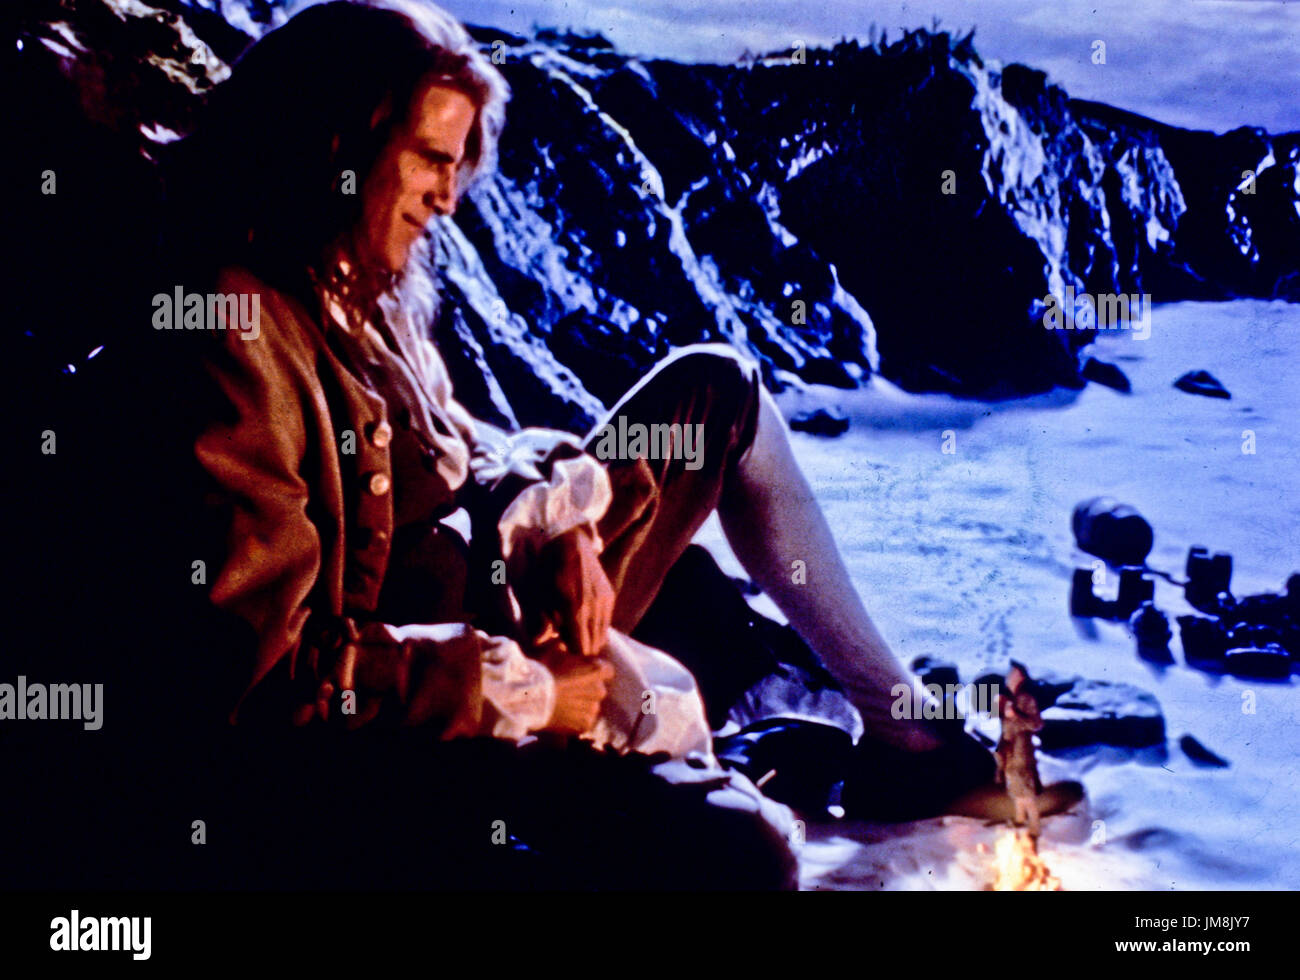 ted danson, gulliver's travels, 1996 - Stock Image